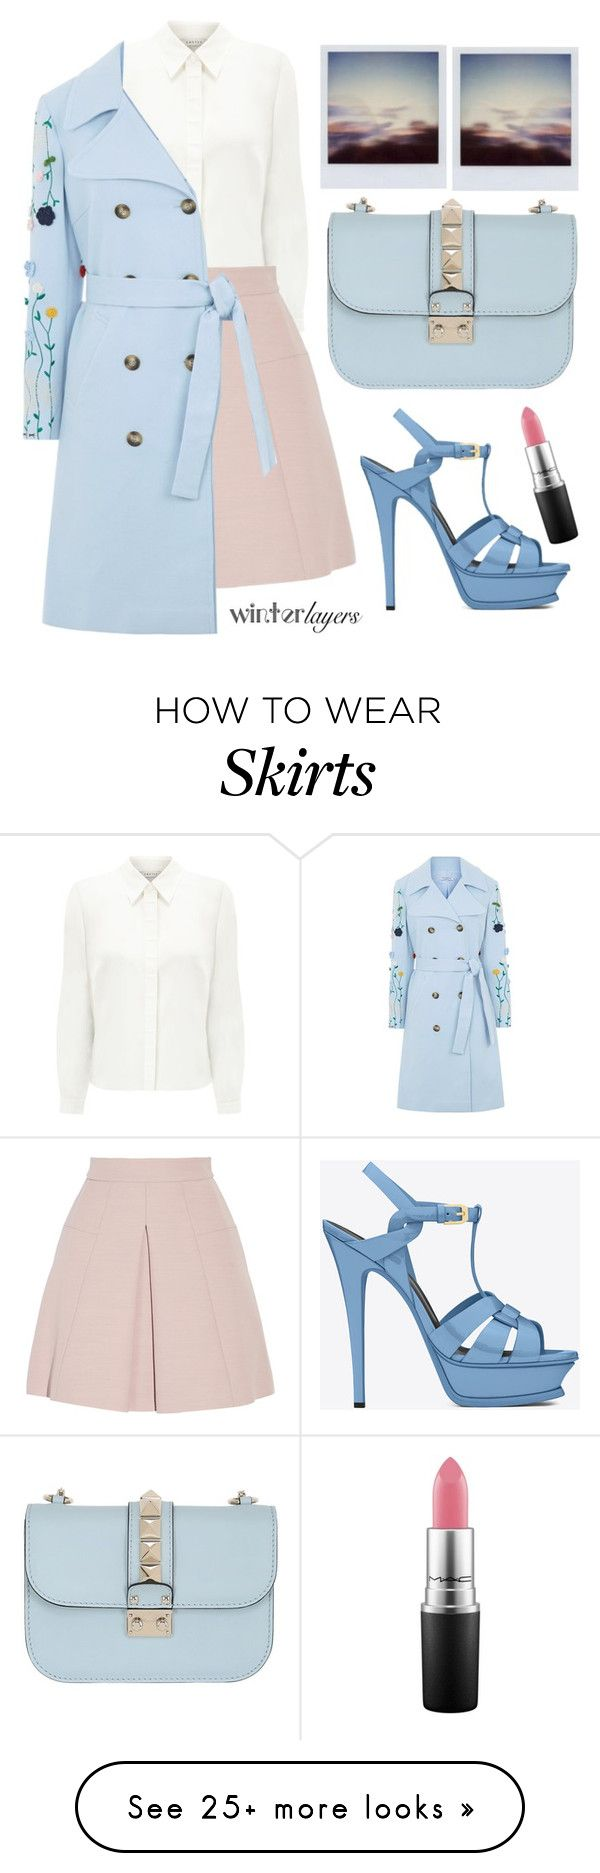 """""""Dancing on my own"""" by karineminzonwilson on Polyvore featuring Eastex, Alexander McQueen, VIVETTA, Valentino, Yves Saint Laurent, MAC Cosmetics, women's clothing, women, female and woman"""